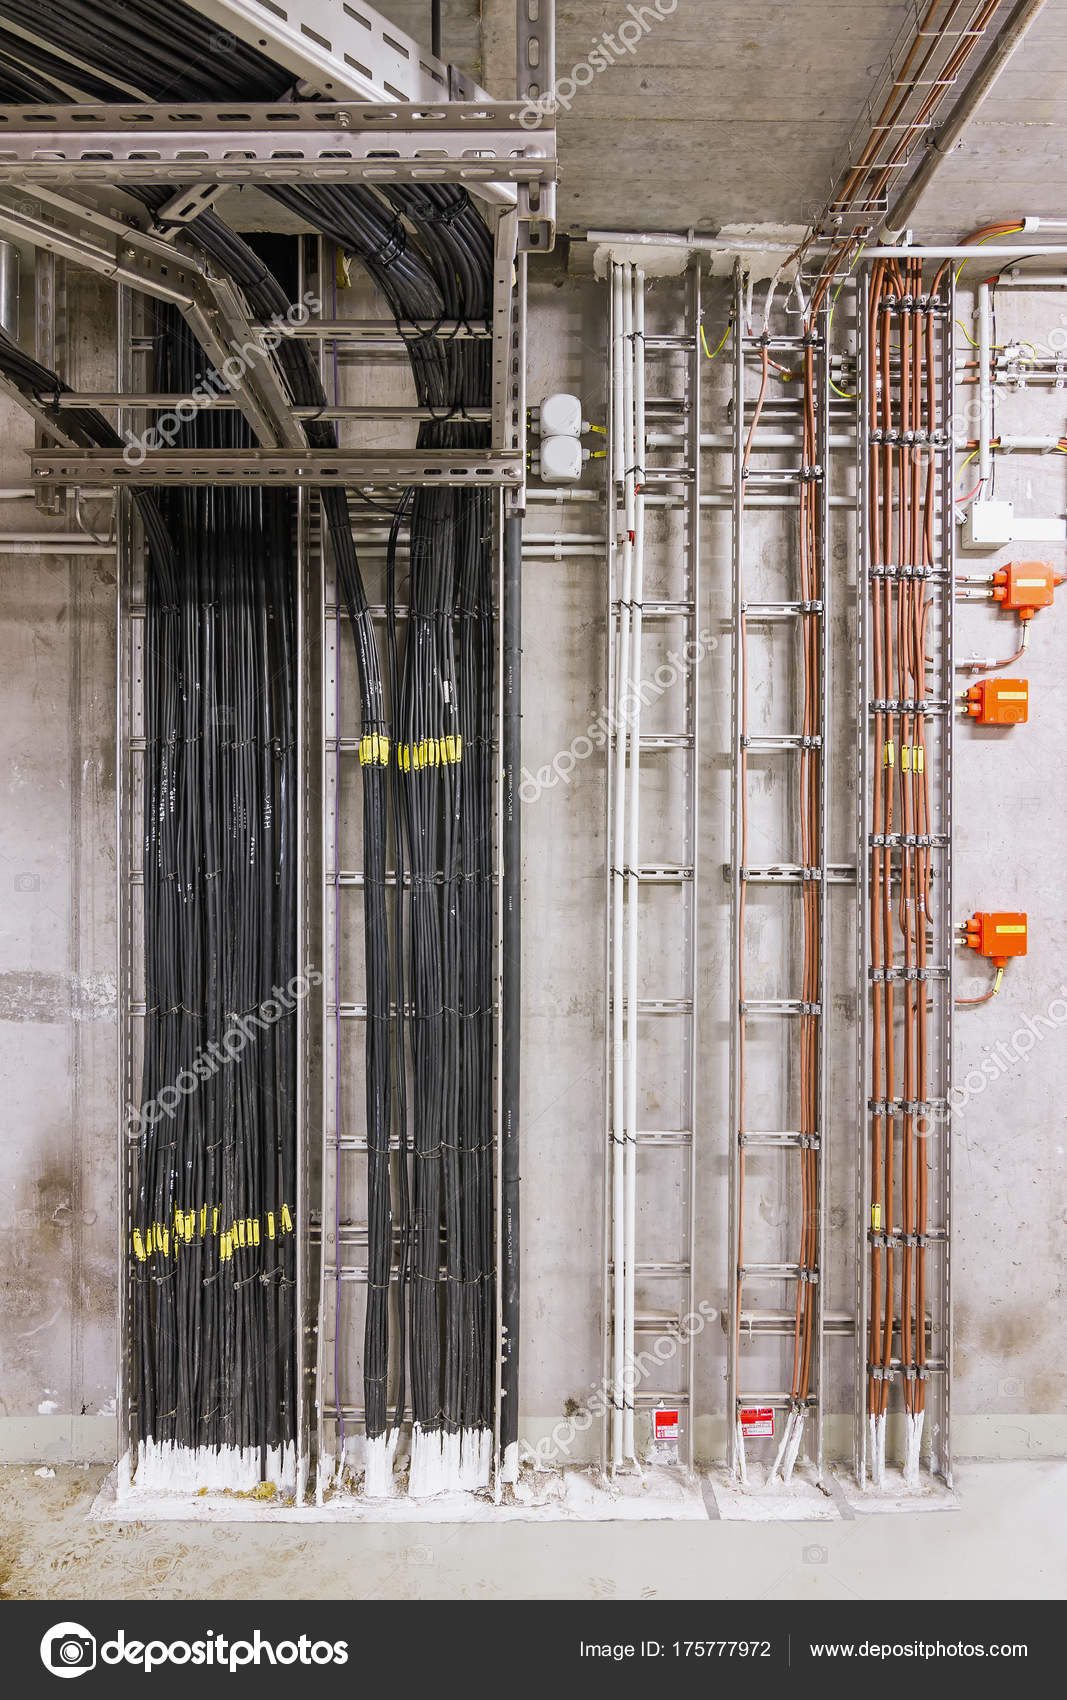 Electrical Wiring Industrial Building — Stock Photo © kefca #175777972